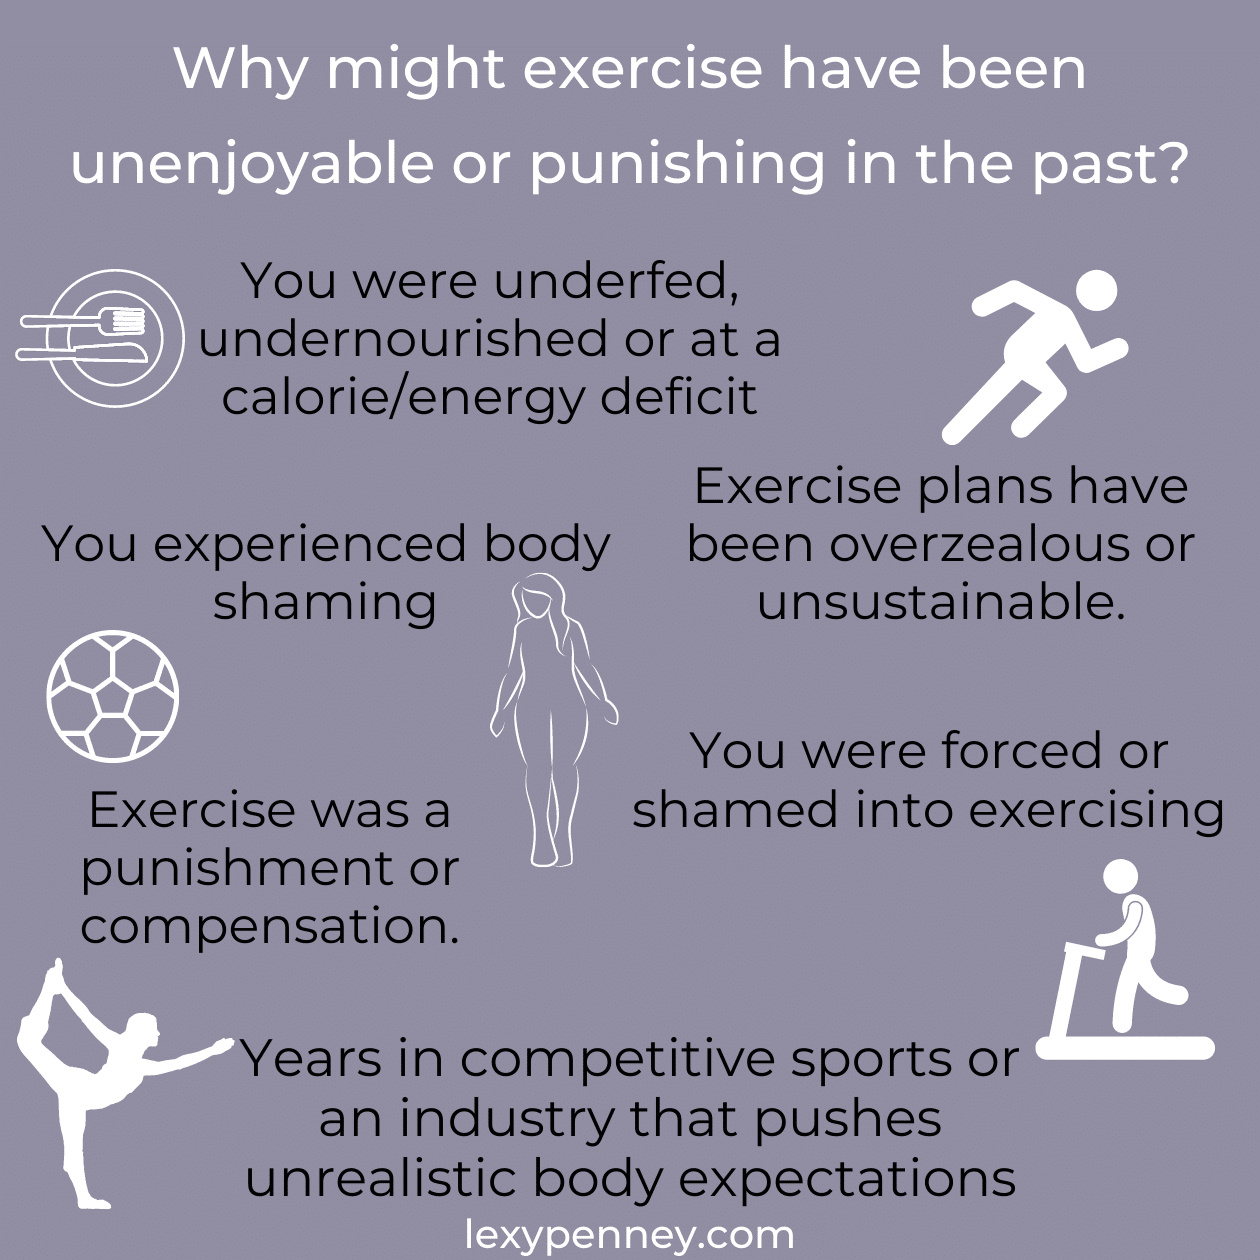 why might exercise have been unenjoyable or punishing in the past?